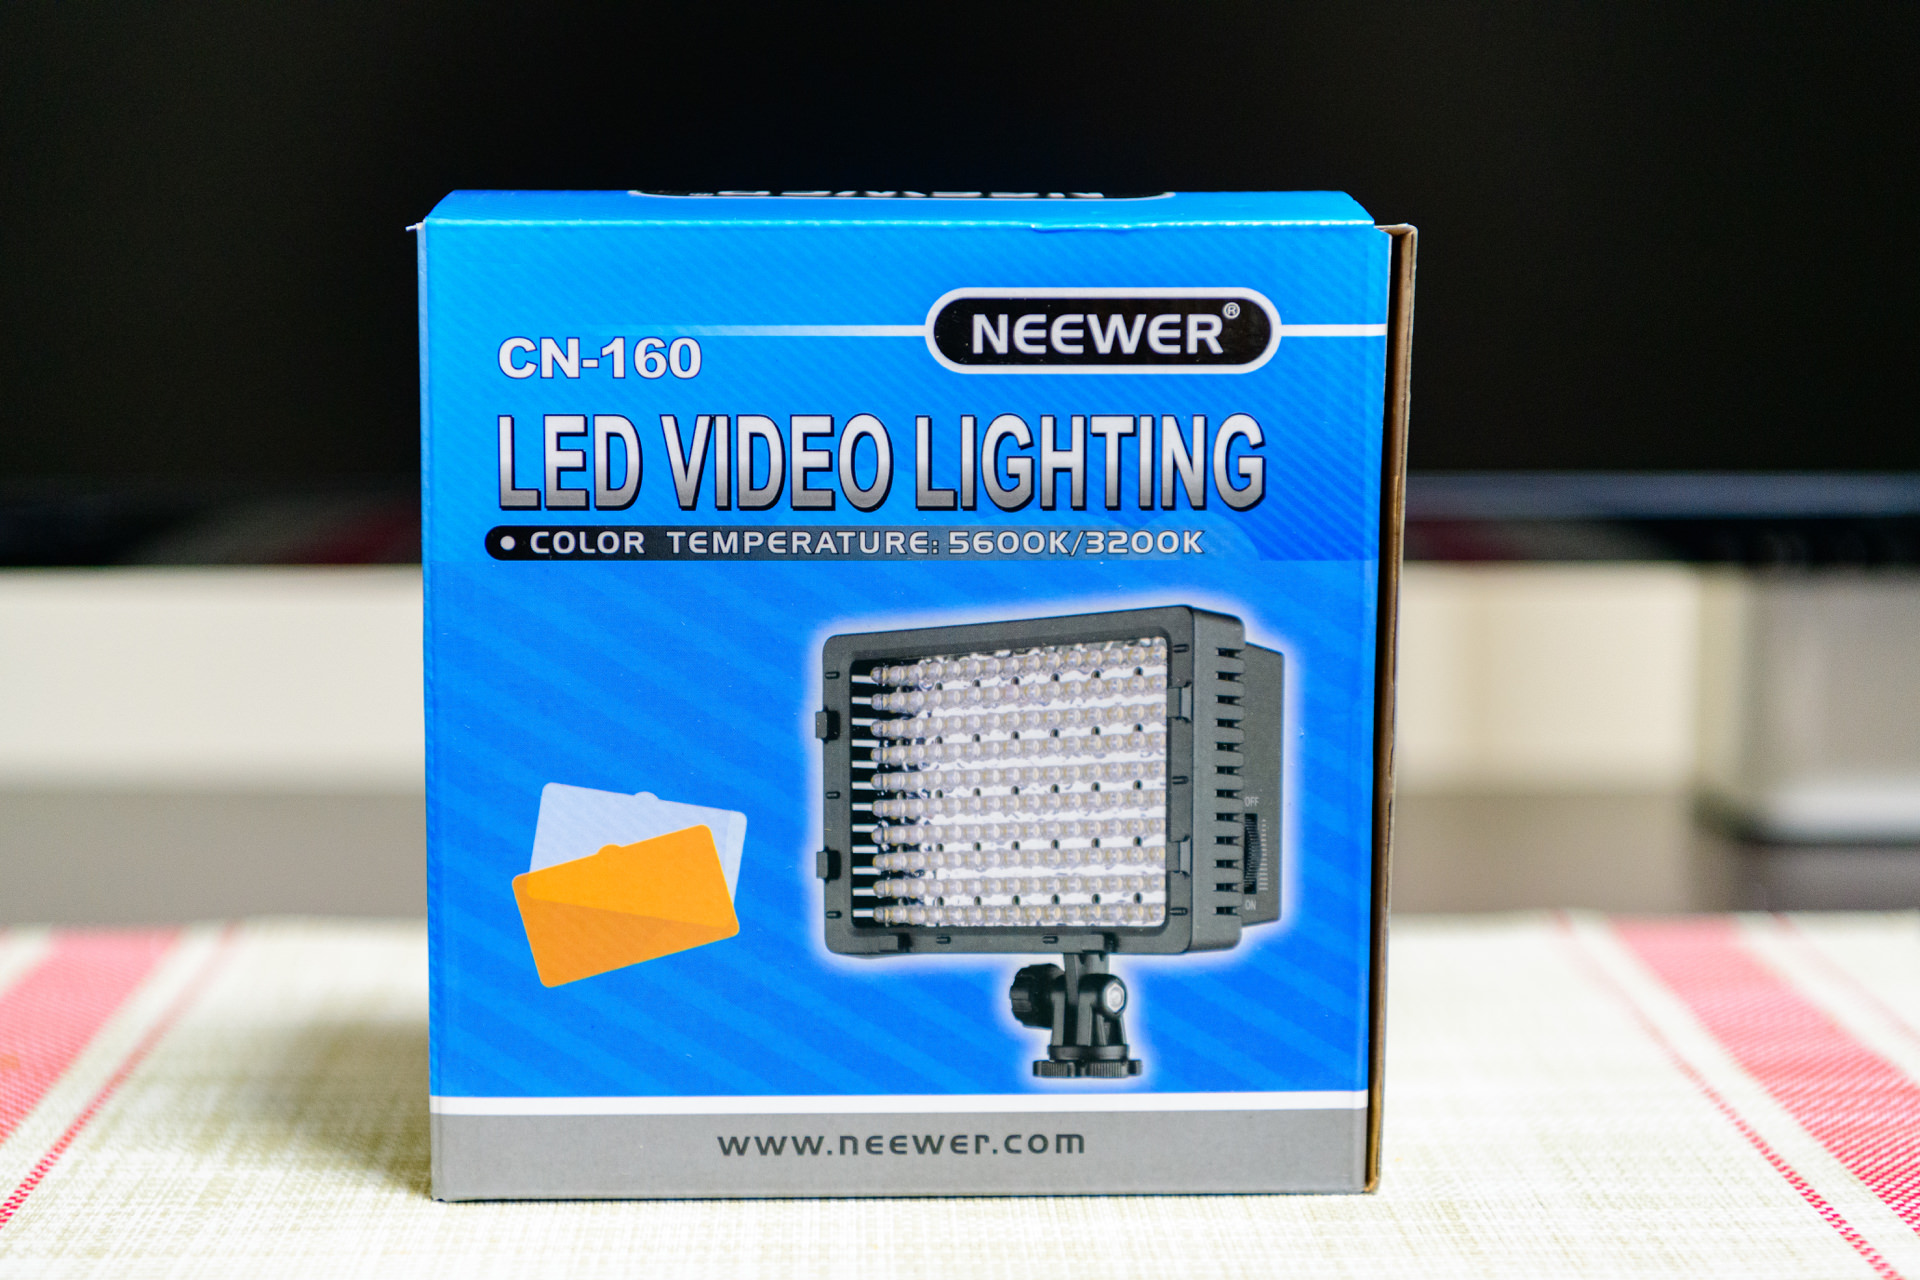 NEEWER CN-160 LED